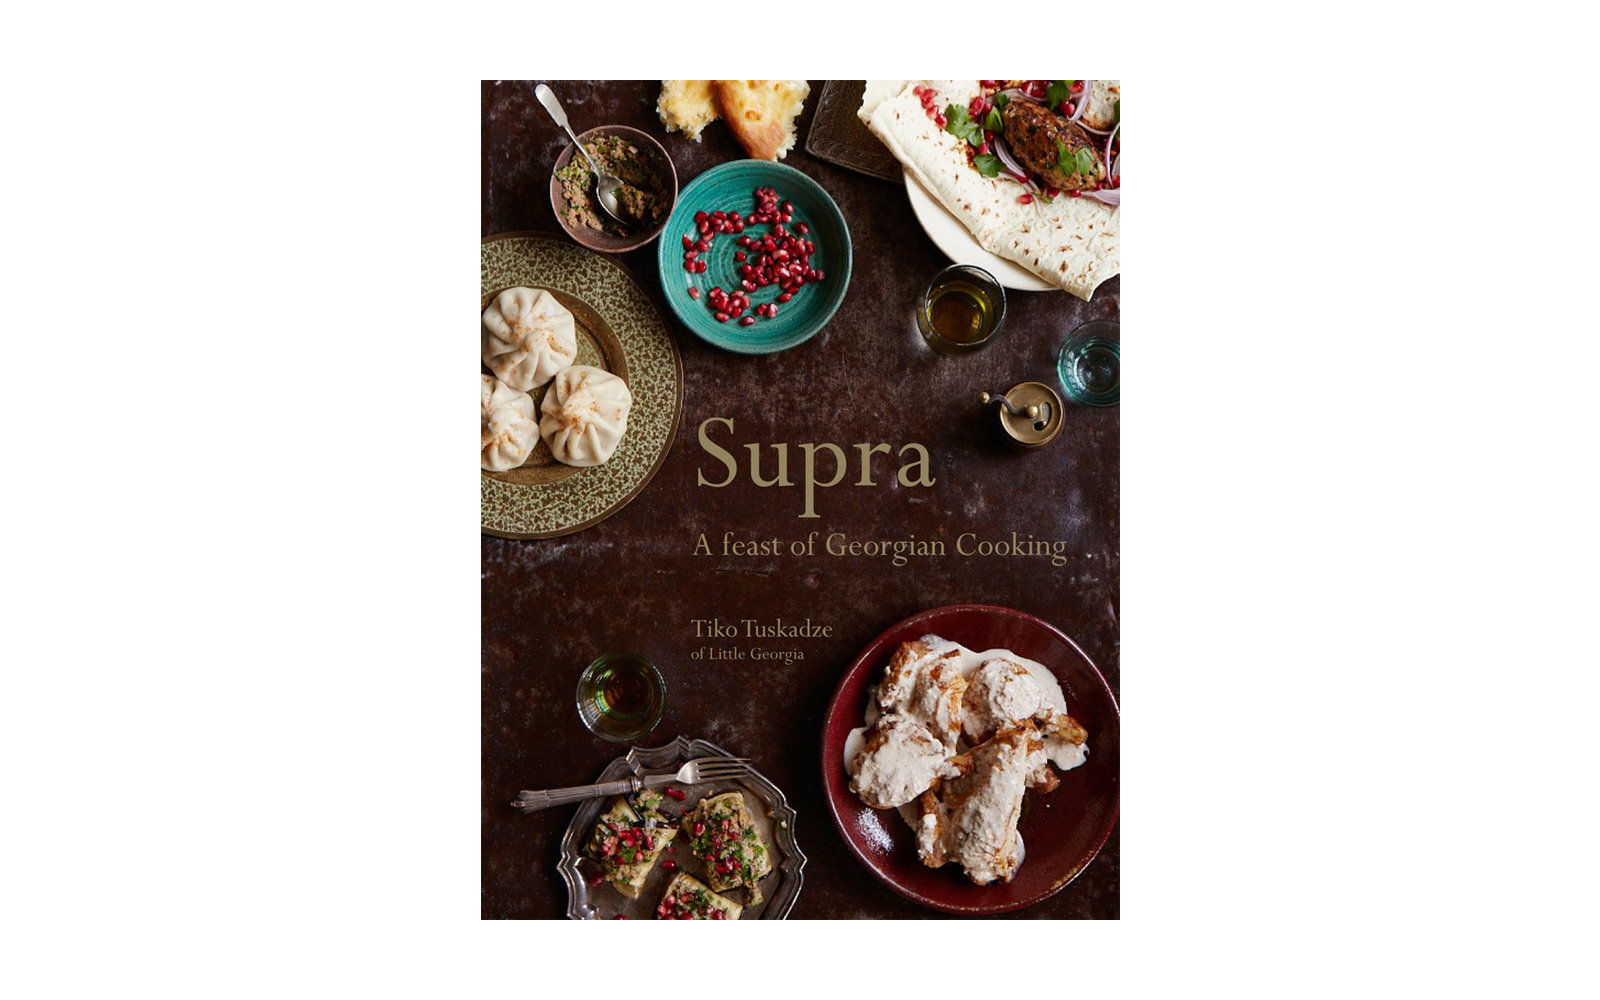 Supra, A Feast of Georgian Cooking, by Tiko Tuskadze